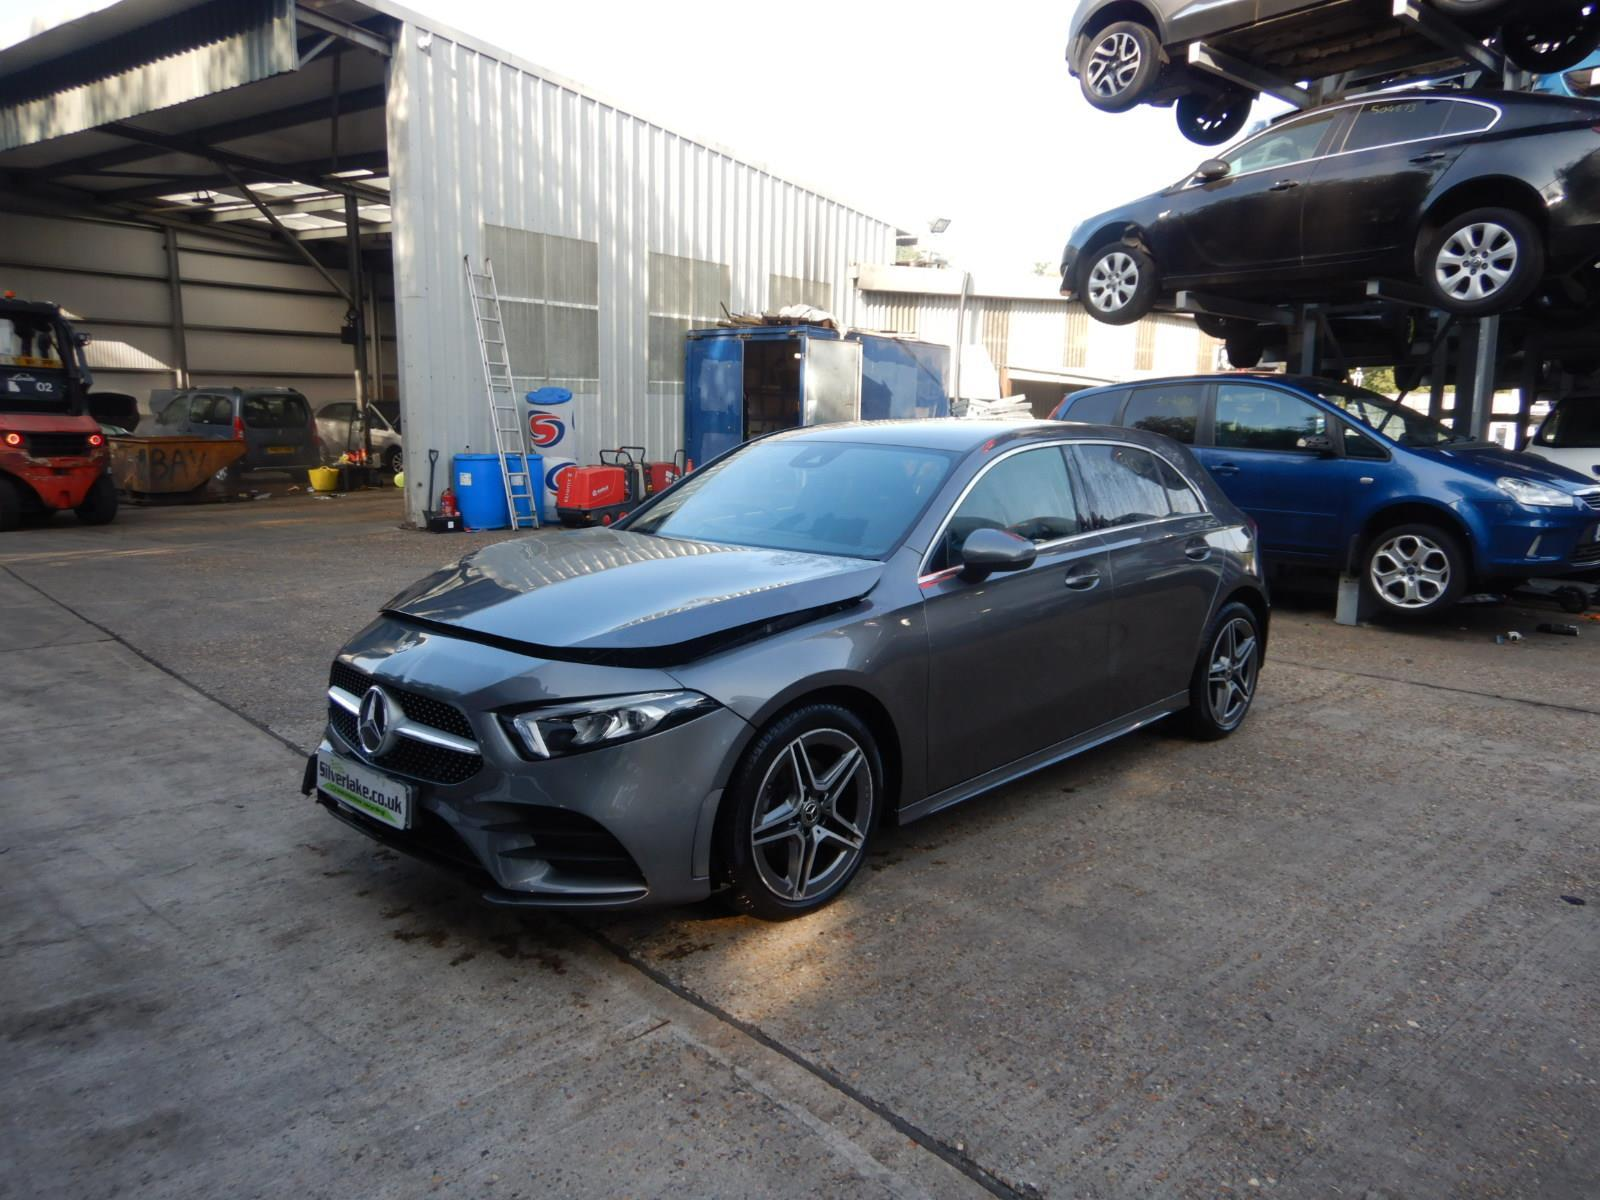 2019 Mercedes-Benz A Class A200 AMG Line 1332cc Turbo Petrol Automatic 7 Speed 5 Door Hatchback